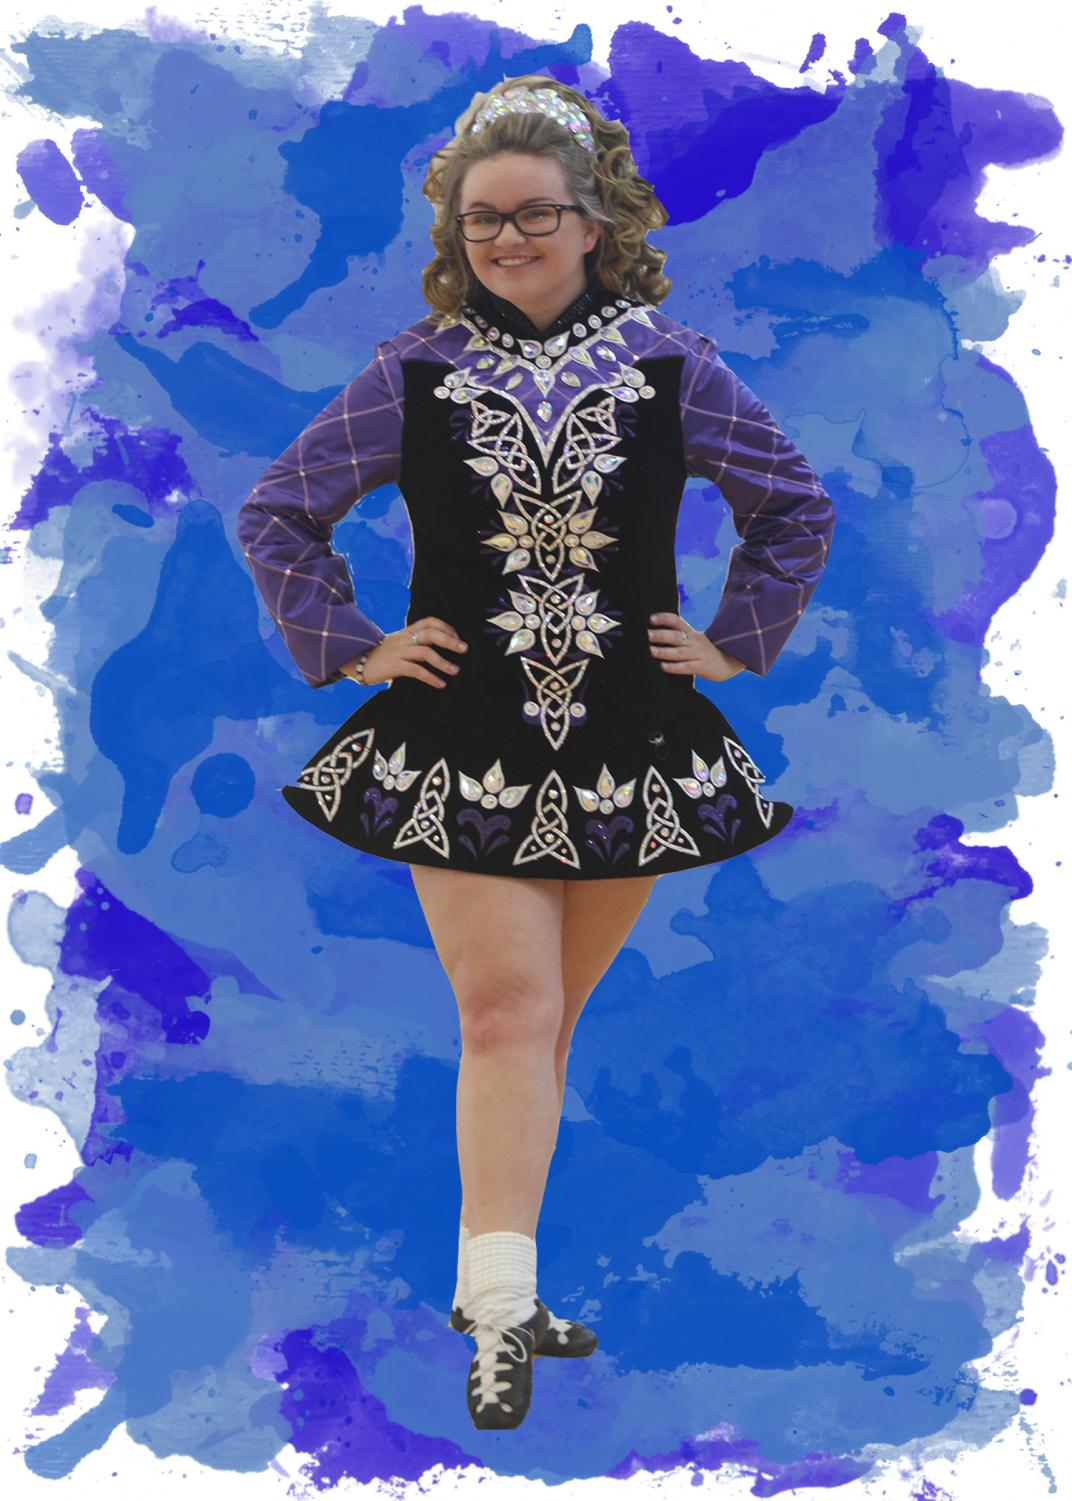 Pointing her toe, senior Kylie Bitcon poses in her dance costume. Bitcon participates in Irish dancing.